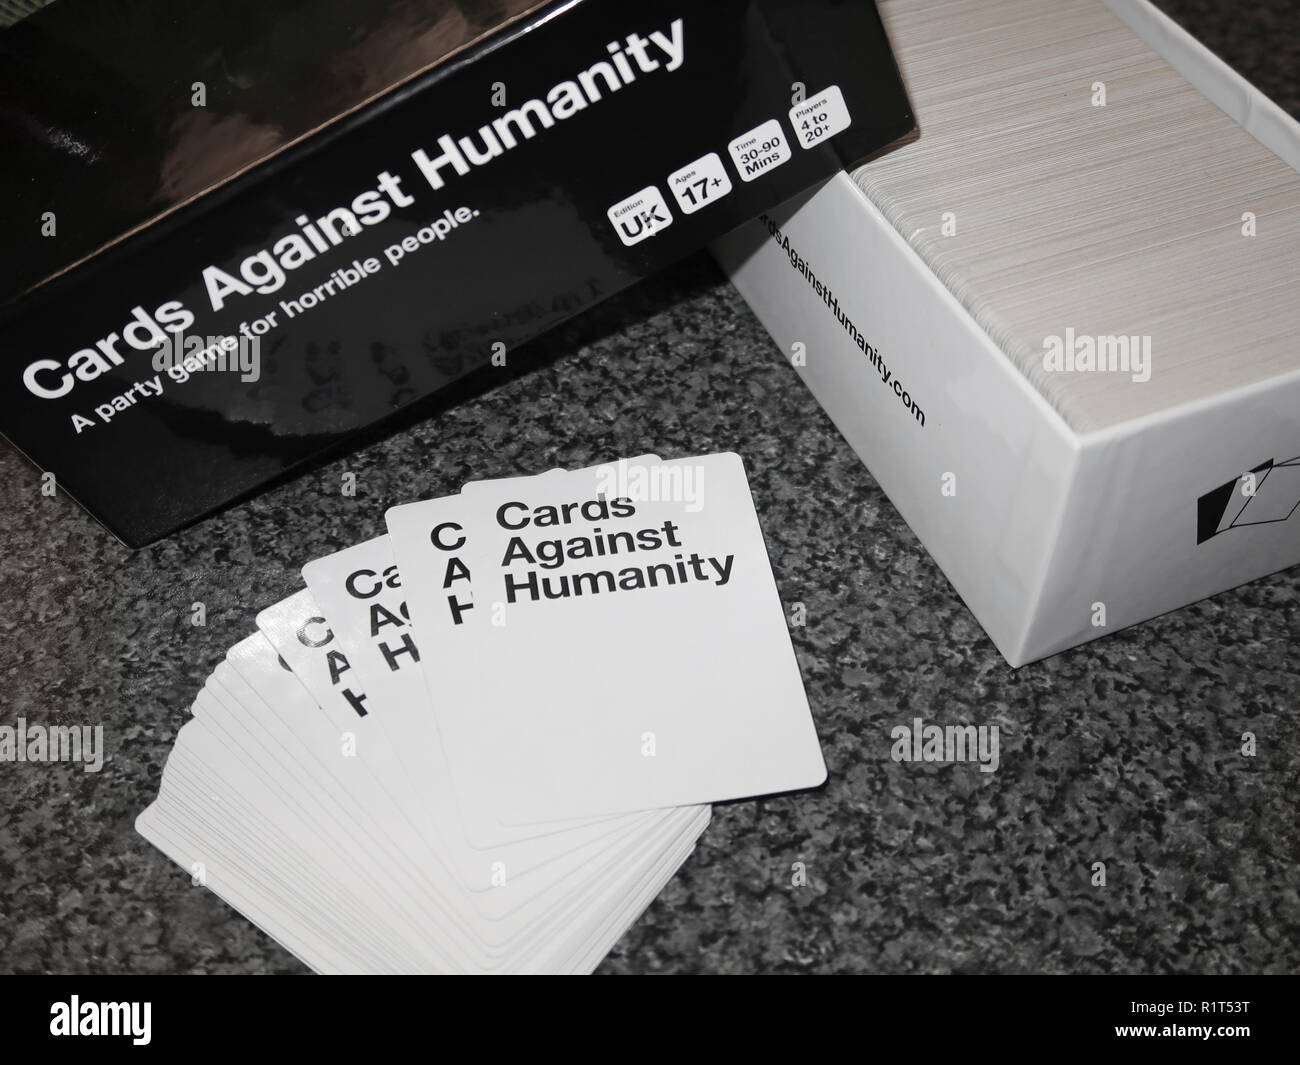 Cards Against Humanity adult card game - Stock Image